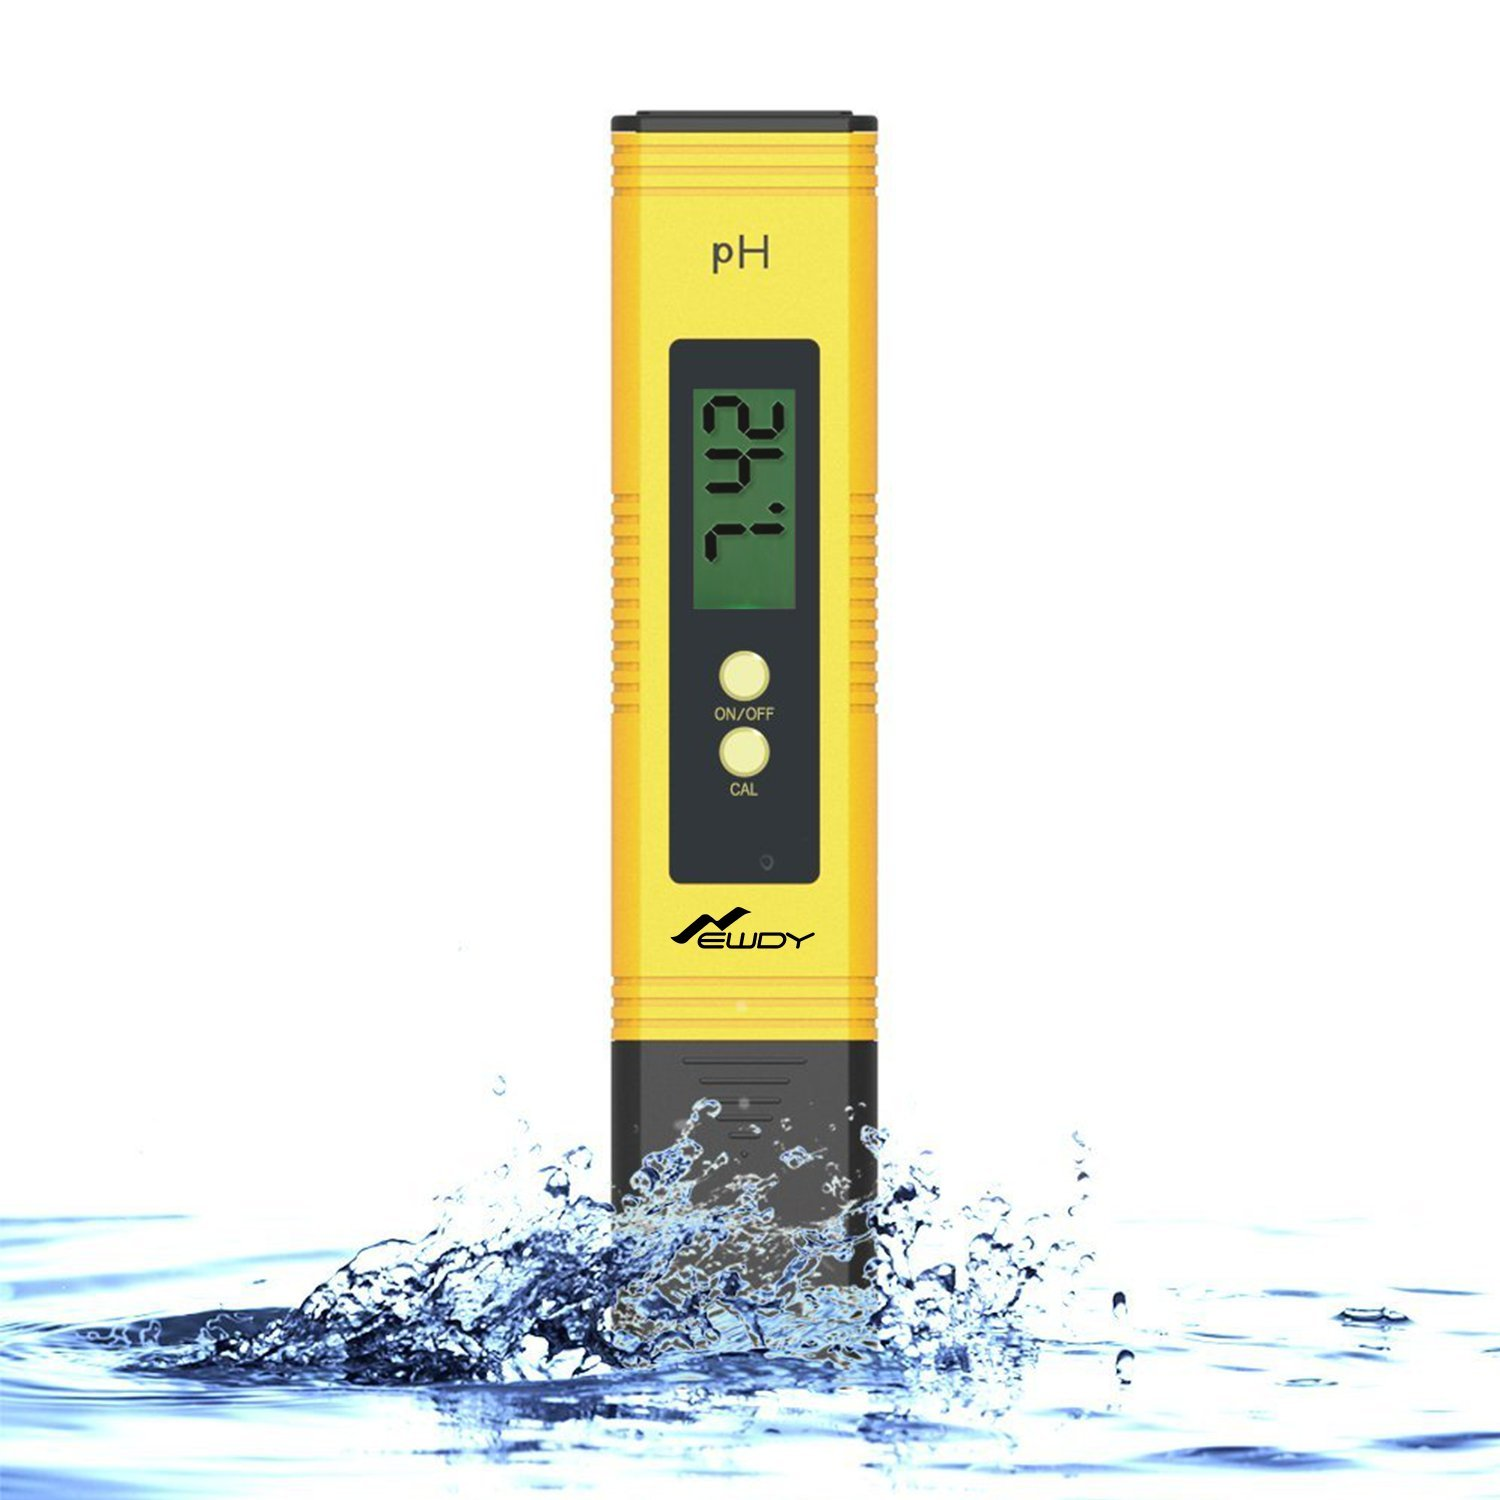 Newdy Digital PH Meter Tester for Water Quality, Food, Aquarium, Pool & Hydroponics,0.01/High Accuracy +/- 0.05 and 0.00-14.00 Measurement Range, Large LCD Display Battery Included -Yellow